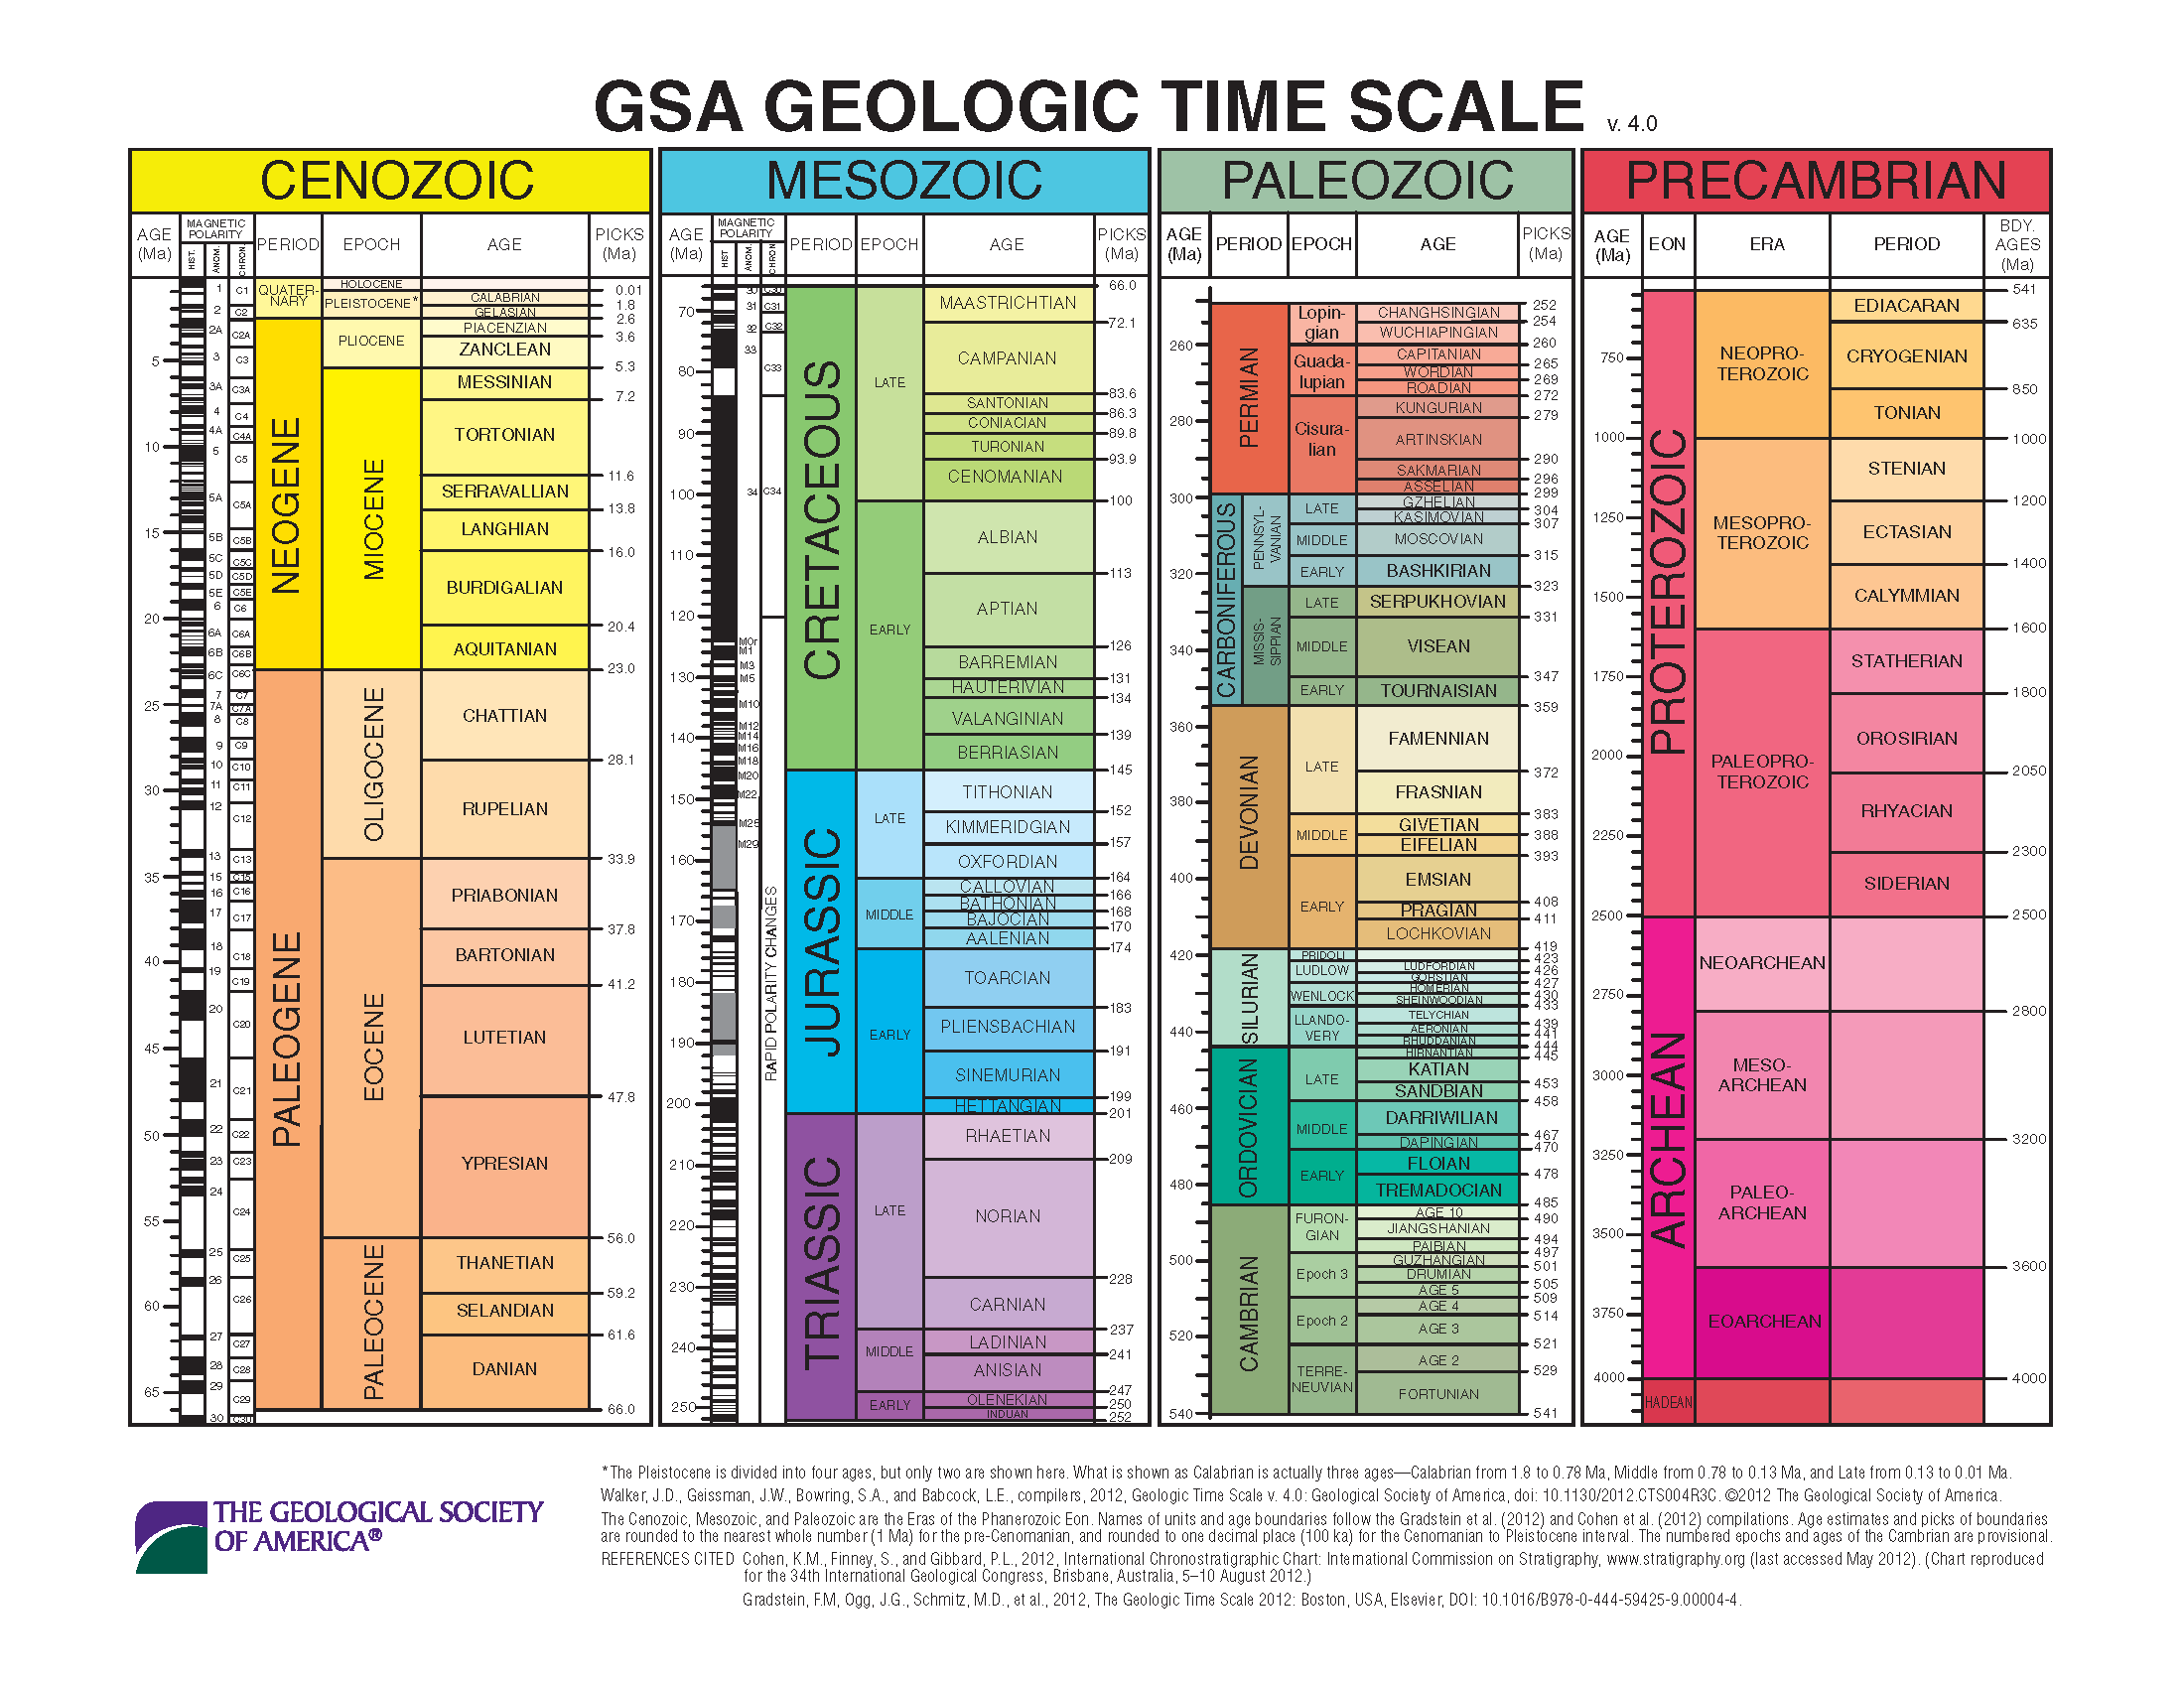 Geologic Society of America Geologic Time Scale, 2012